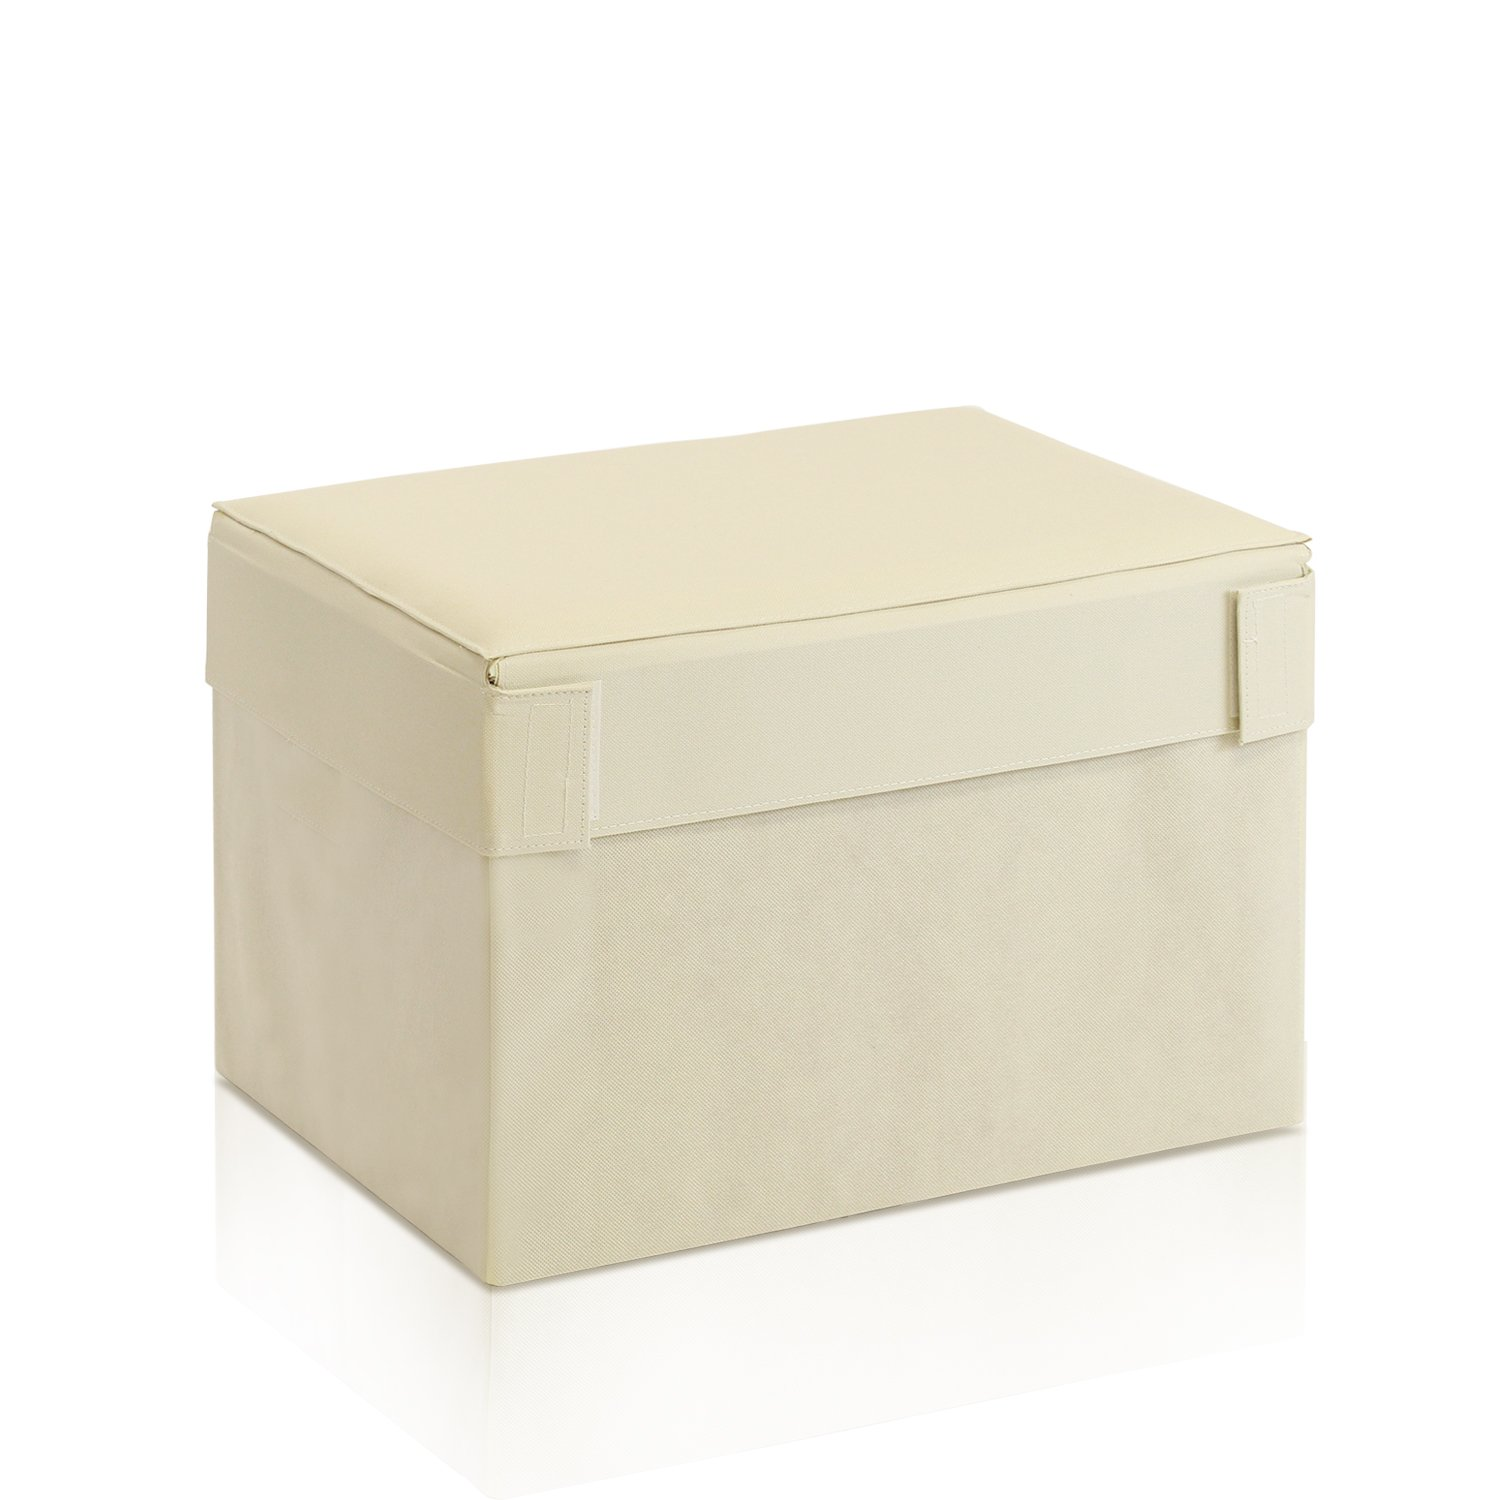 Furinno Oxford Rectangular Foldable Storage Stool Ottoman, Ivory